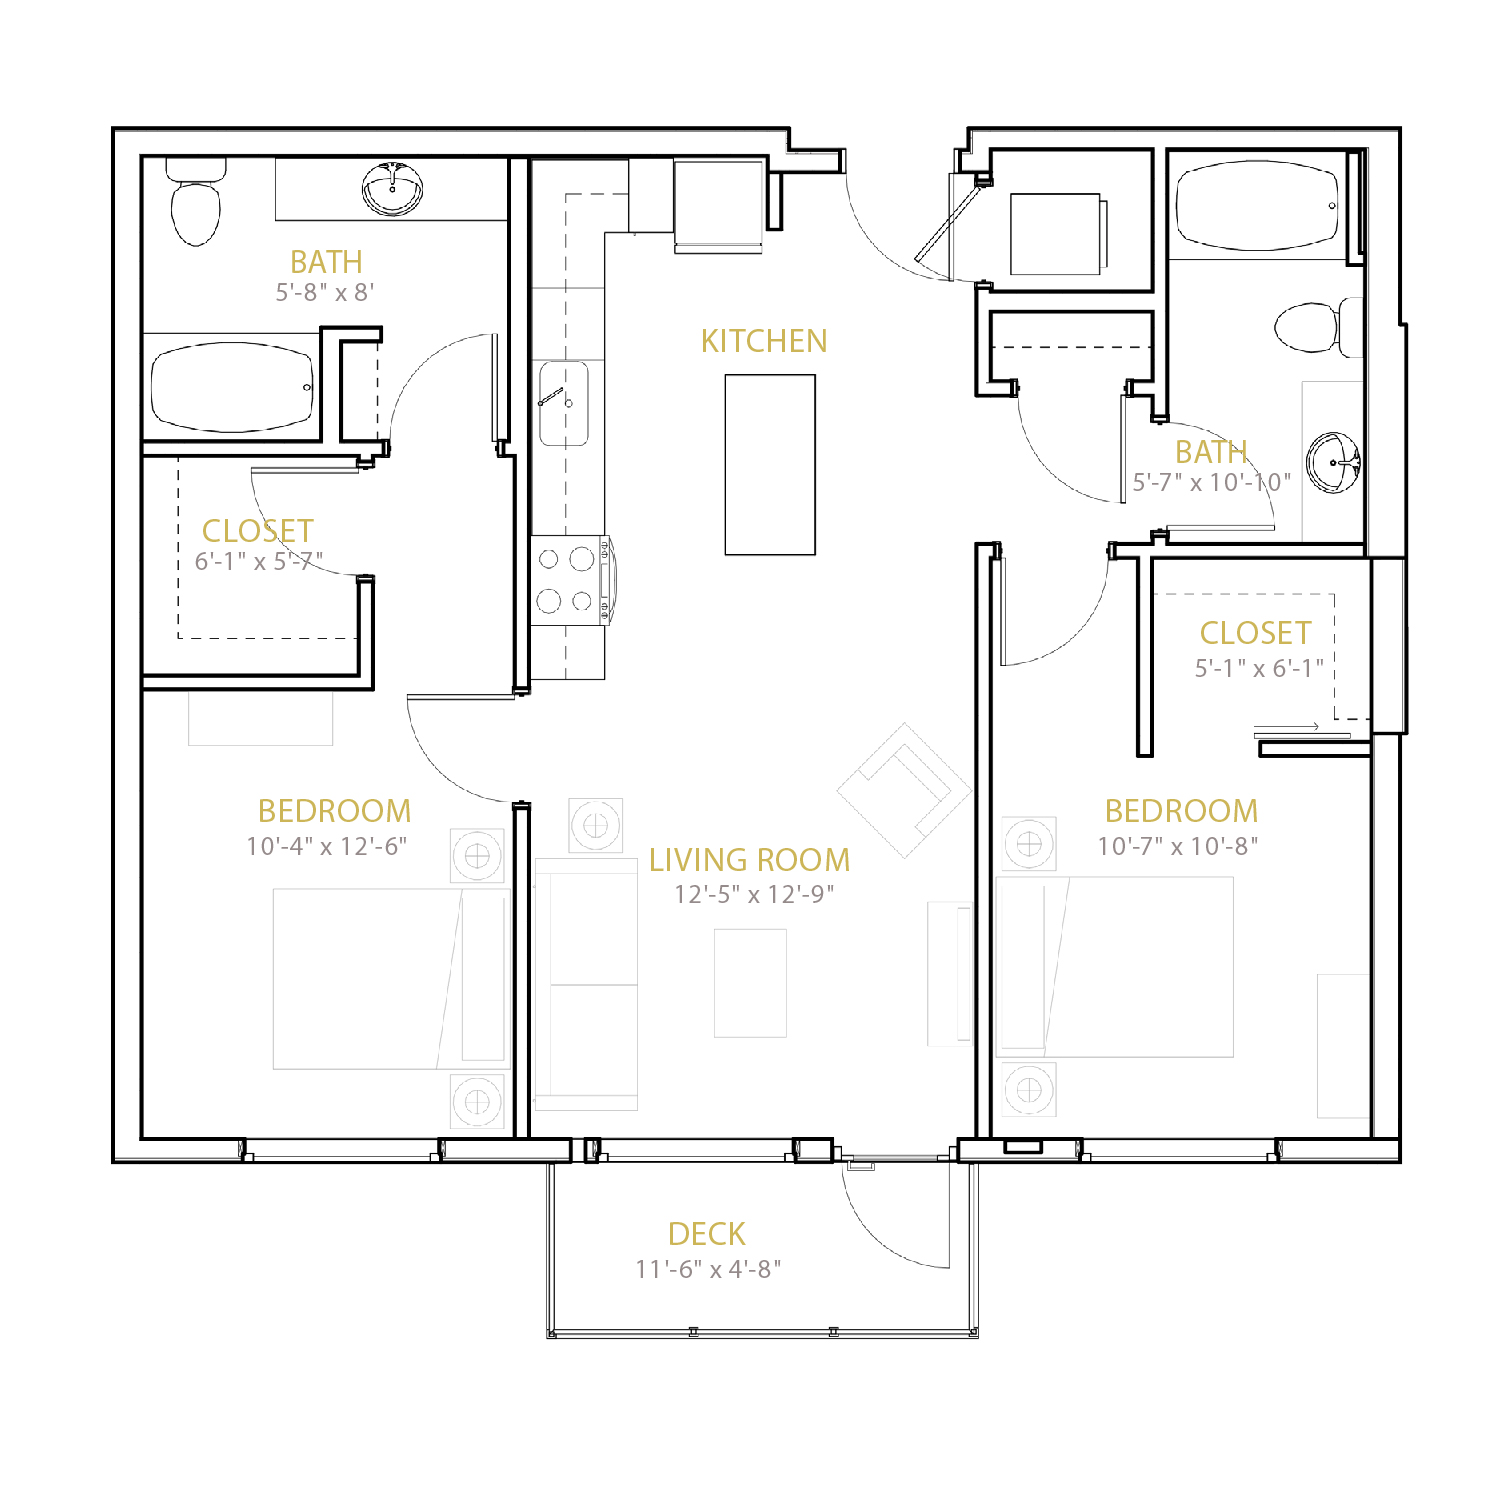 C One floor plan diagram. Two bedrooms, two bathrooms, an open kitchen and living area, and a deck.